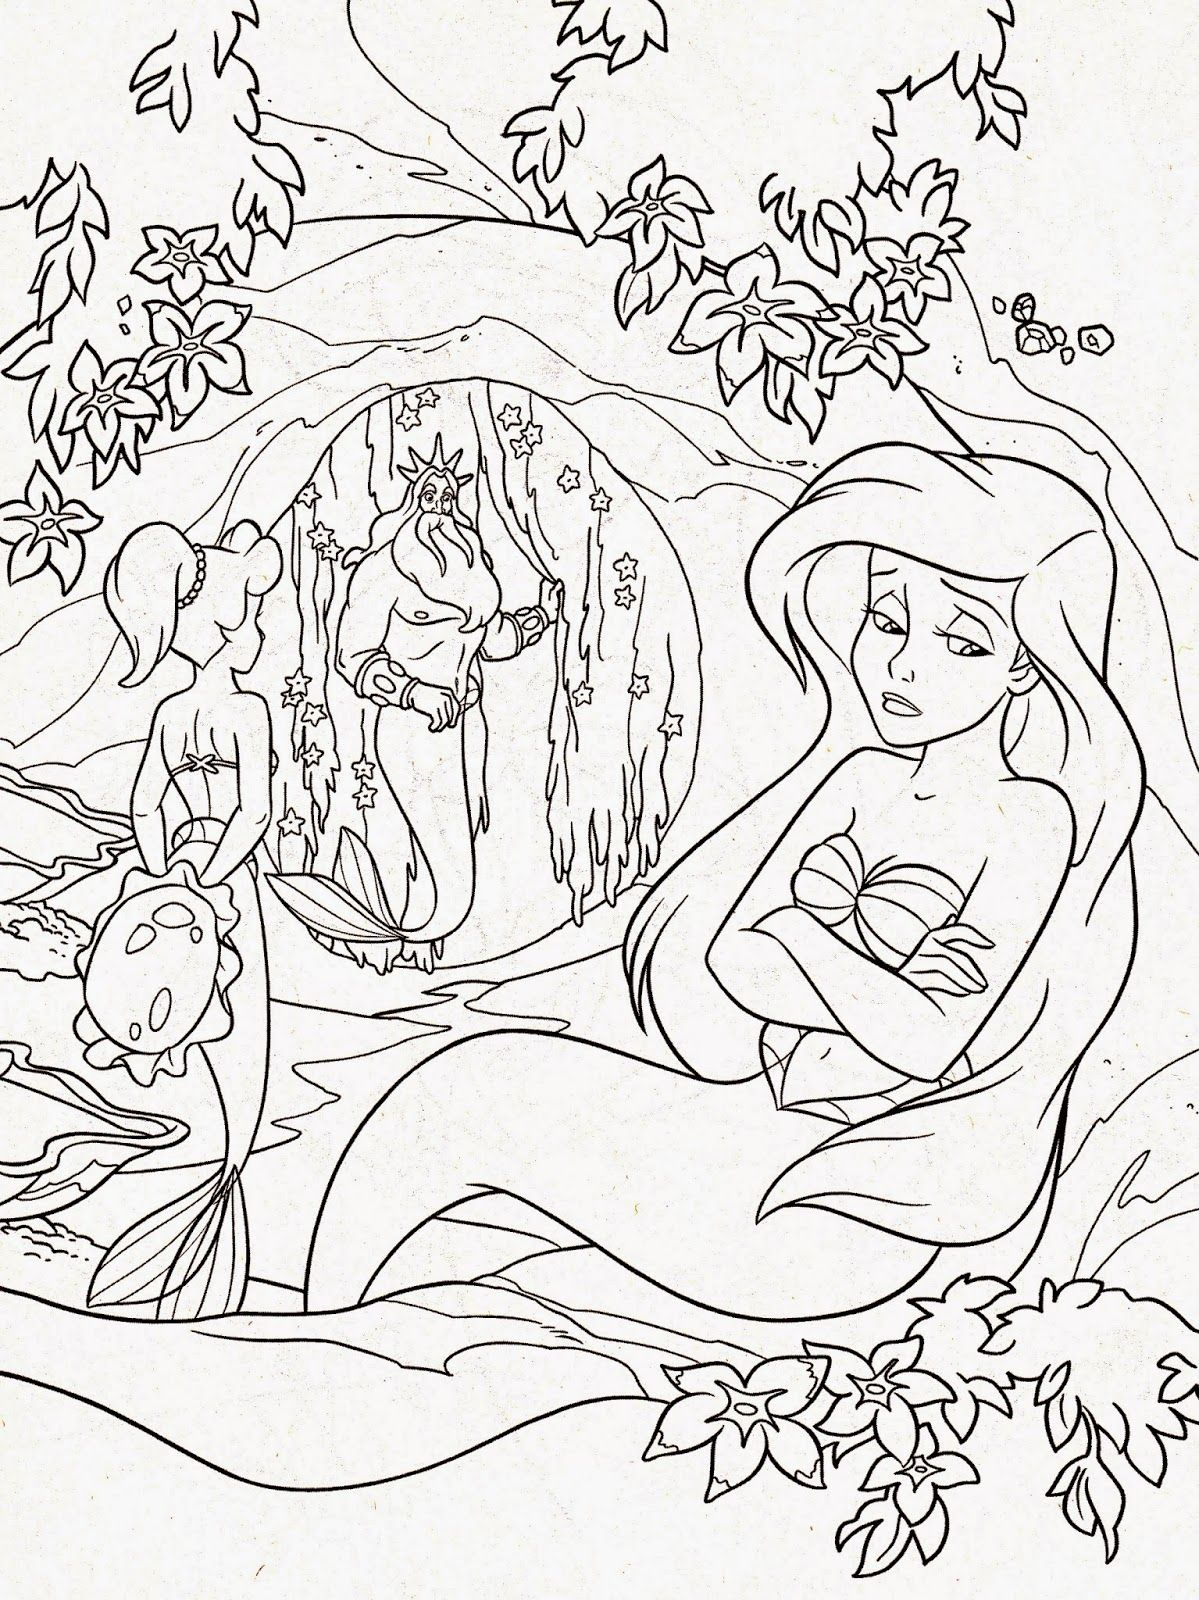 Hard Coloring Pages Of Mermaids Coloring Online Adolt